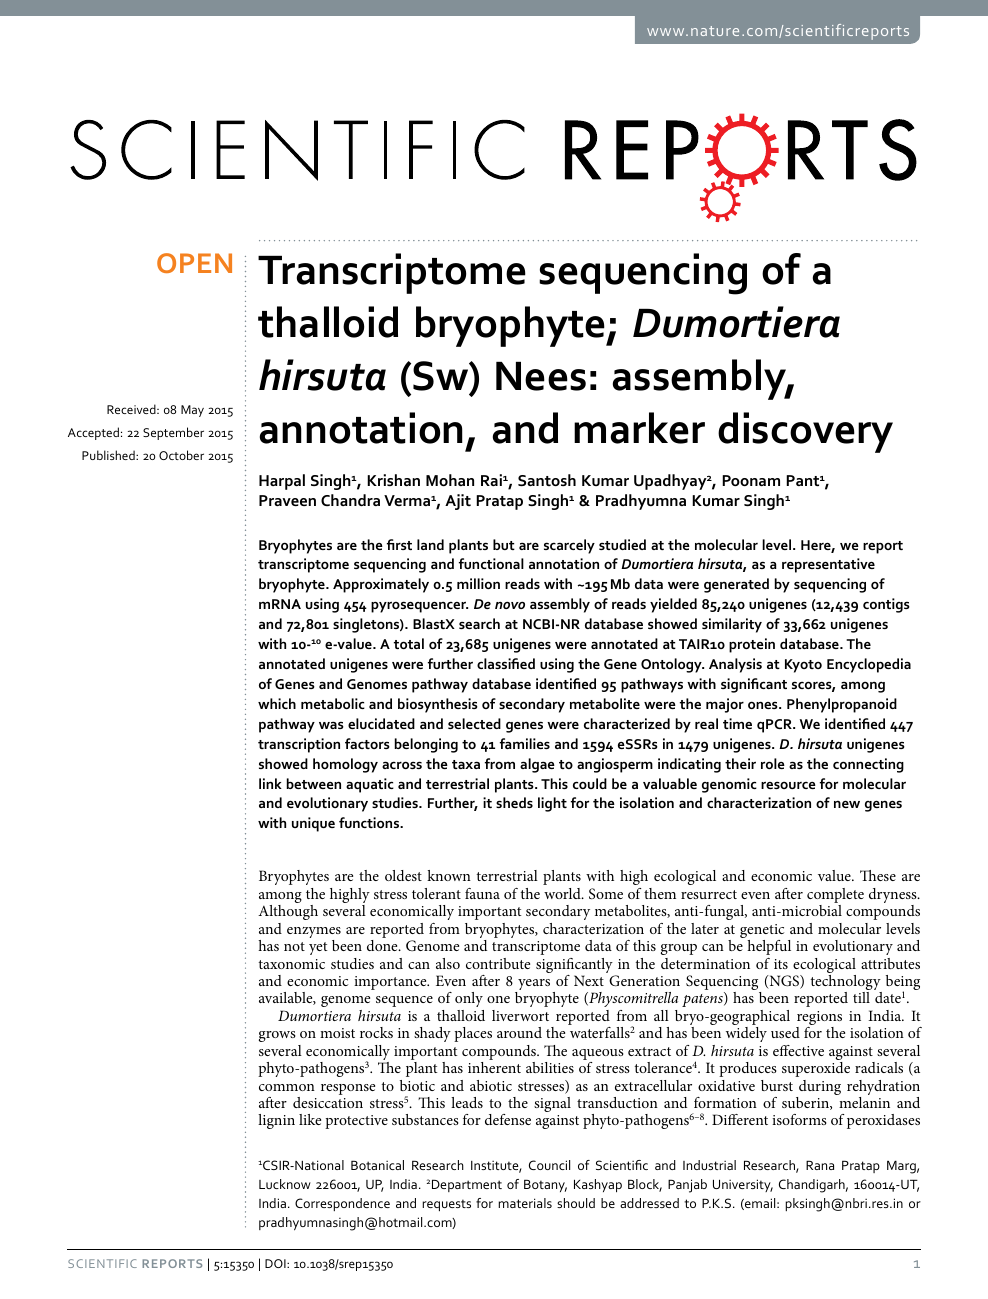 Transcriptome sequencing of a thalloid bryophyte